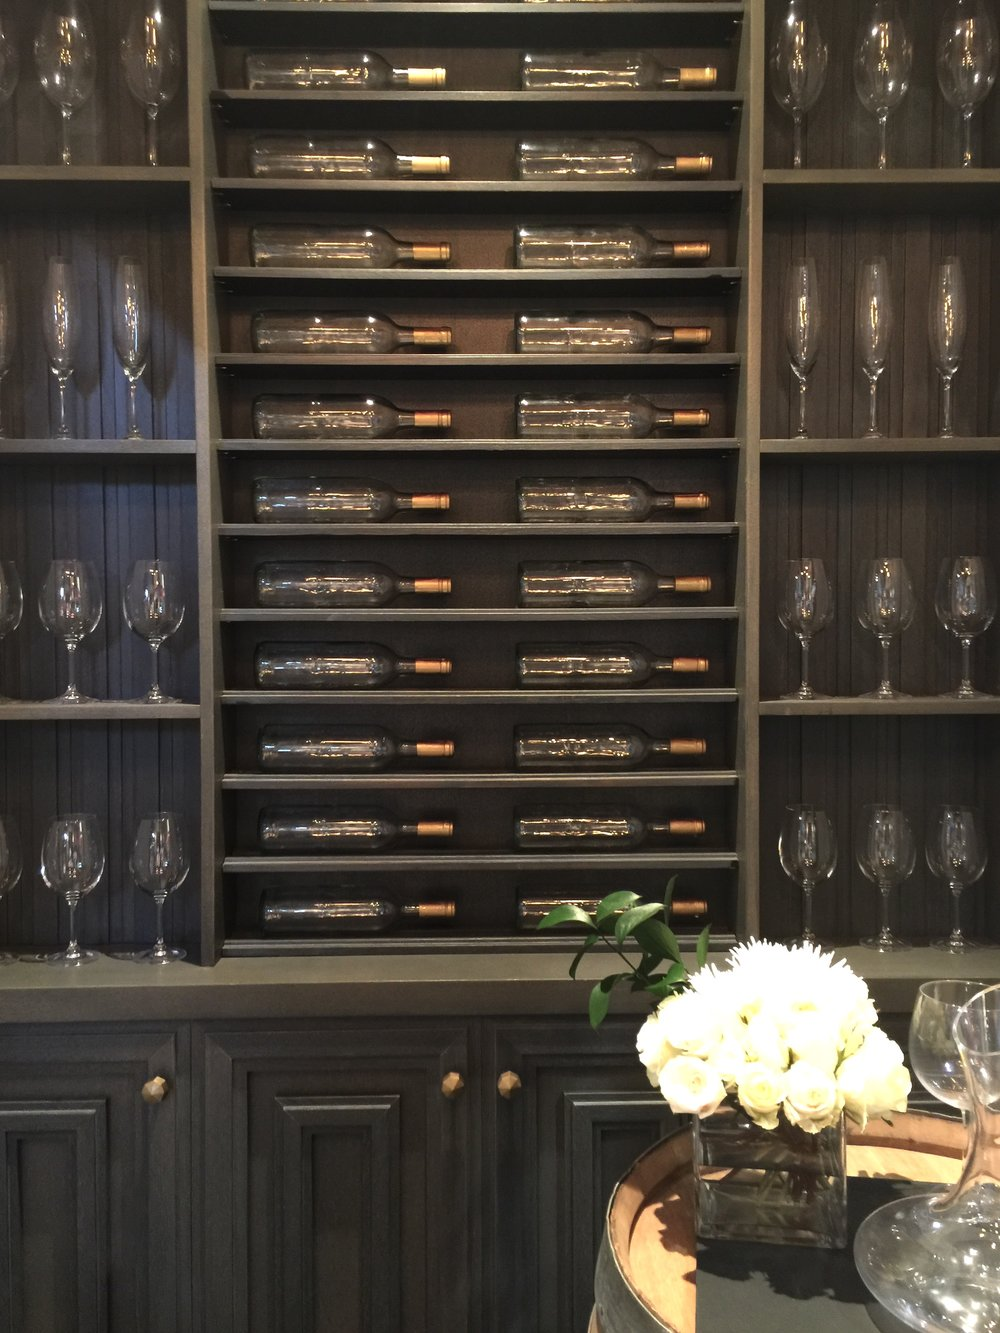 These mouldings and panelings were ingeniously put together on this wall to create some beautiful wine storage with a paneled look. #wineroom #mouldings